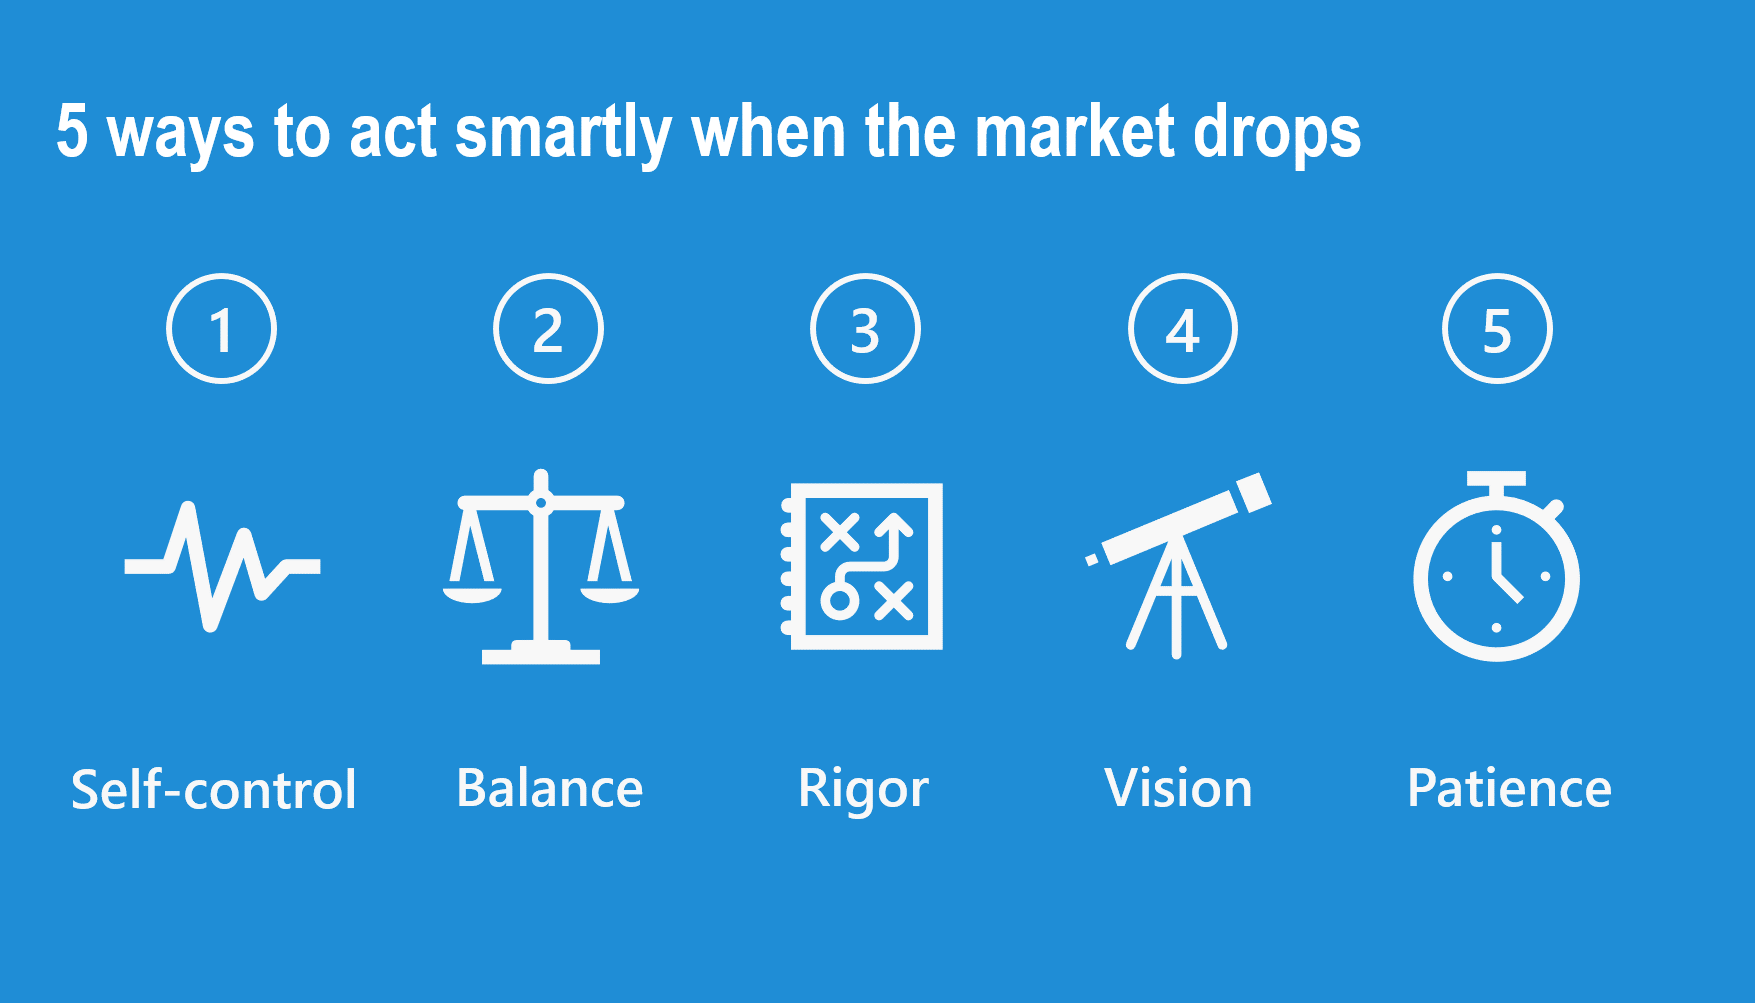 5 ways to act smartly when the market drops